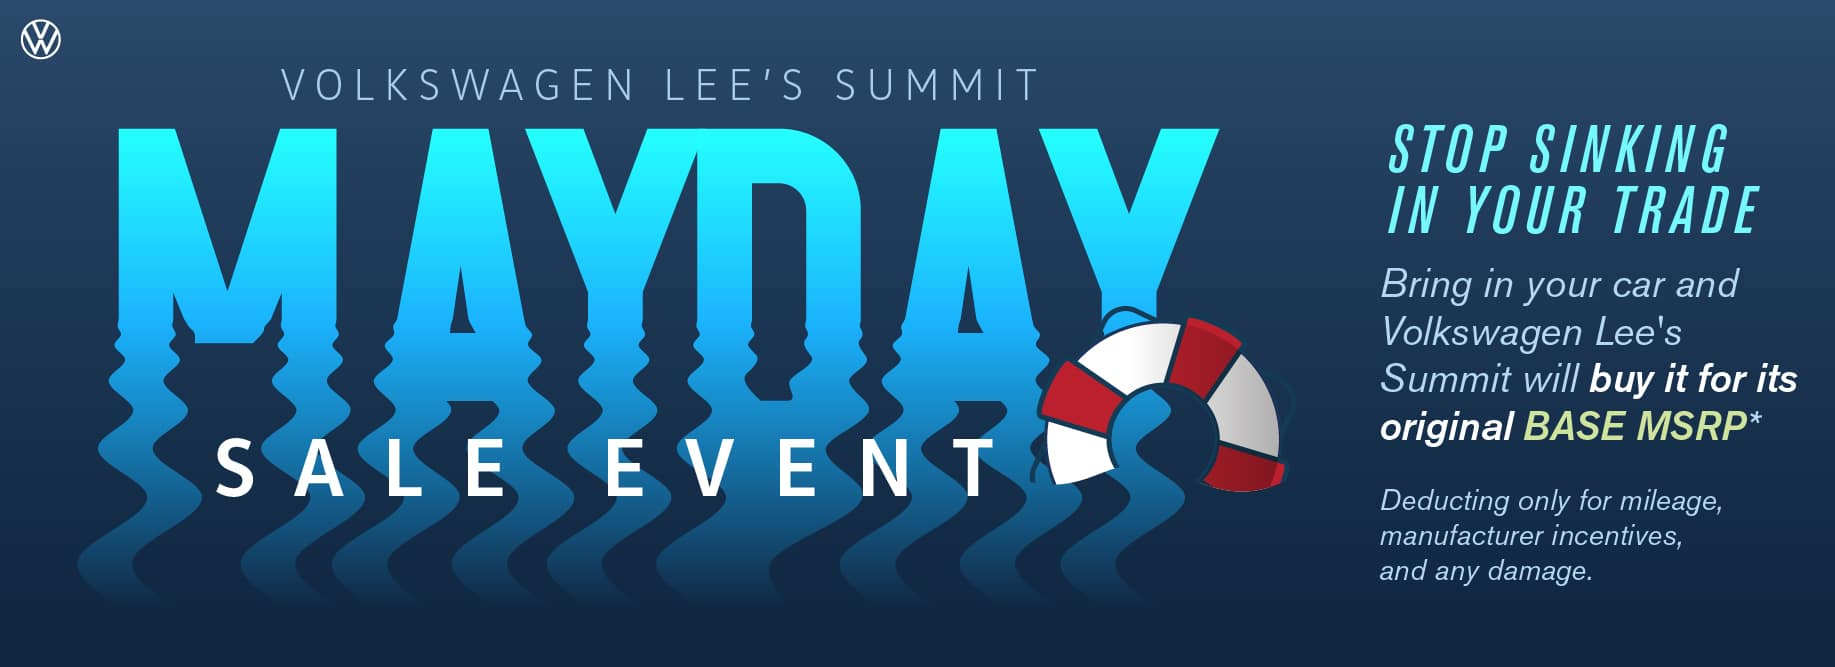 Are you sinking in your trade? Volkswagen Lee's Summit will rescue during MAYDAY Sales Event